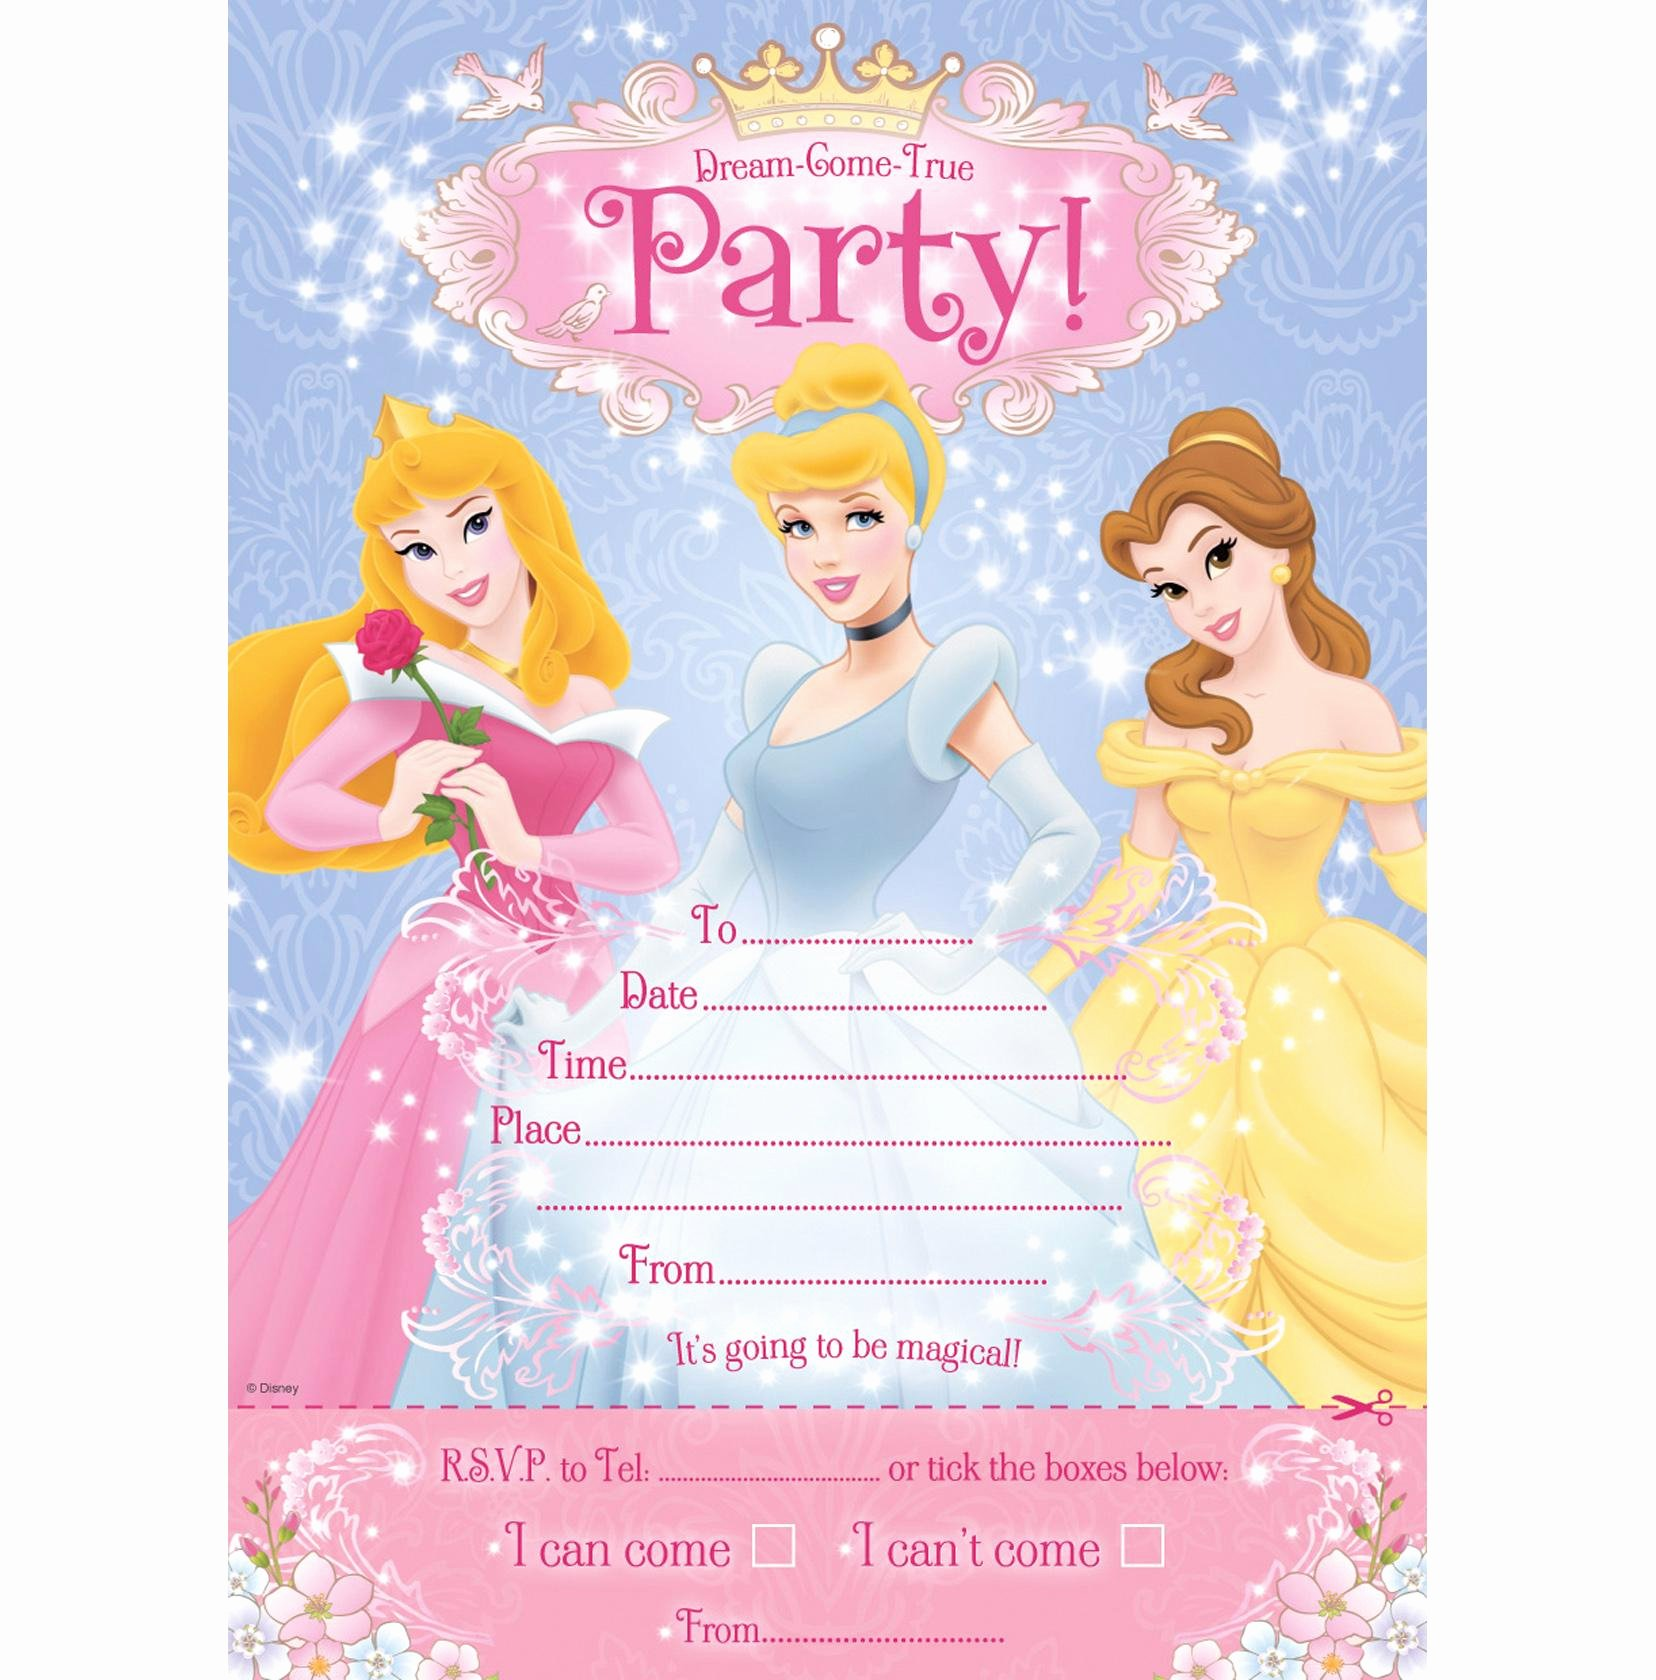 Princess Party Invitation Template Elegant Princess Birthday Invitation Card Template Birthday Tale